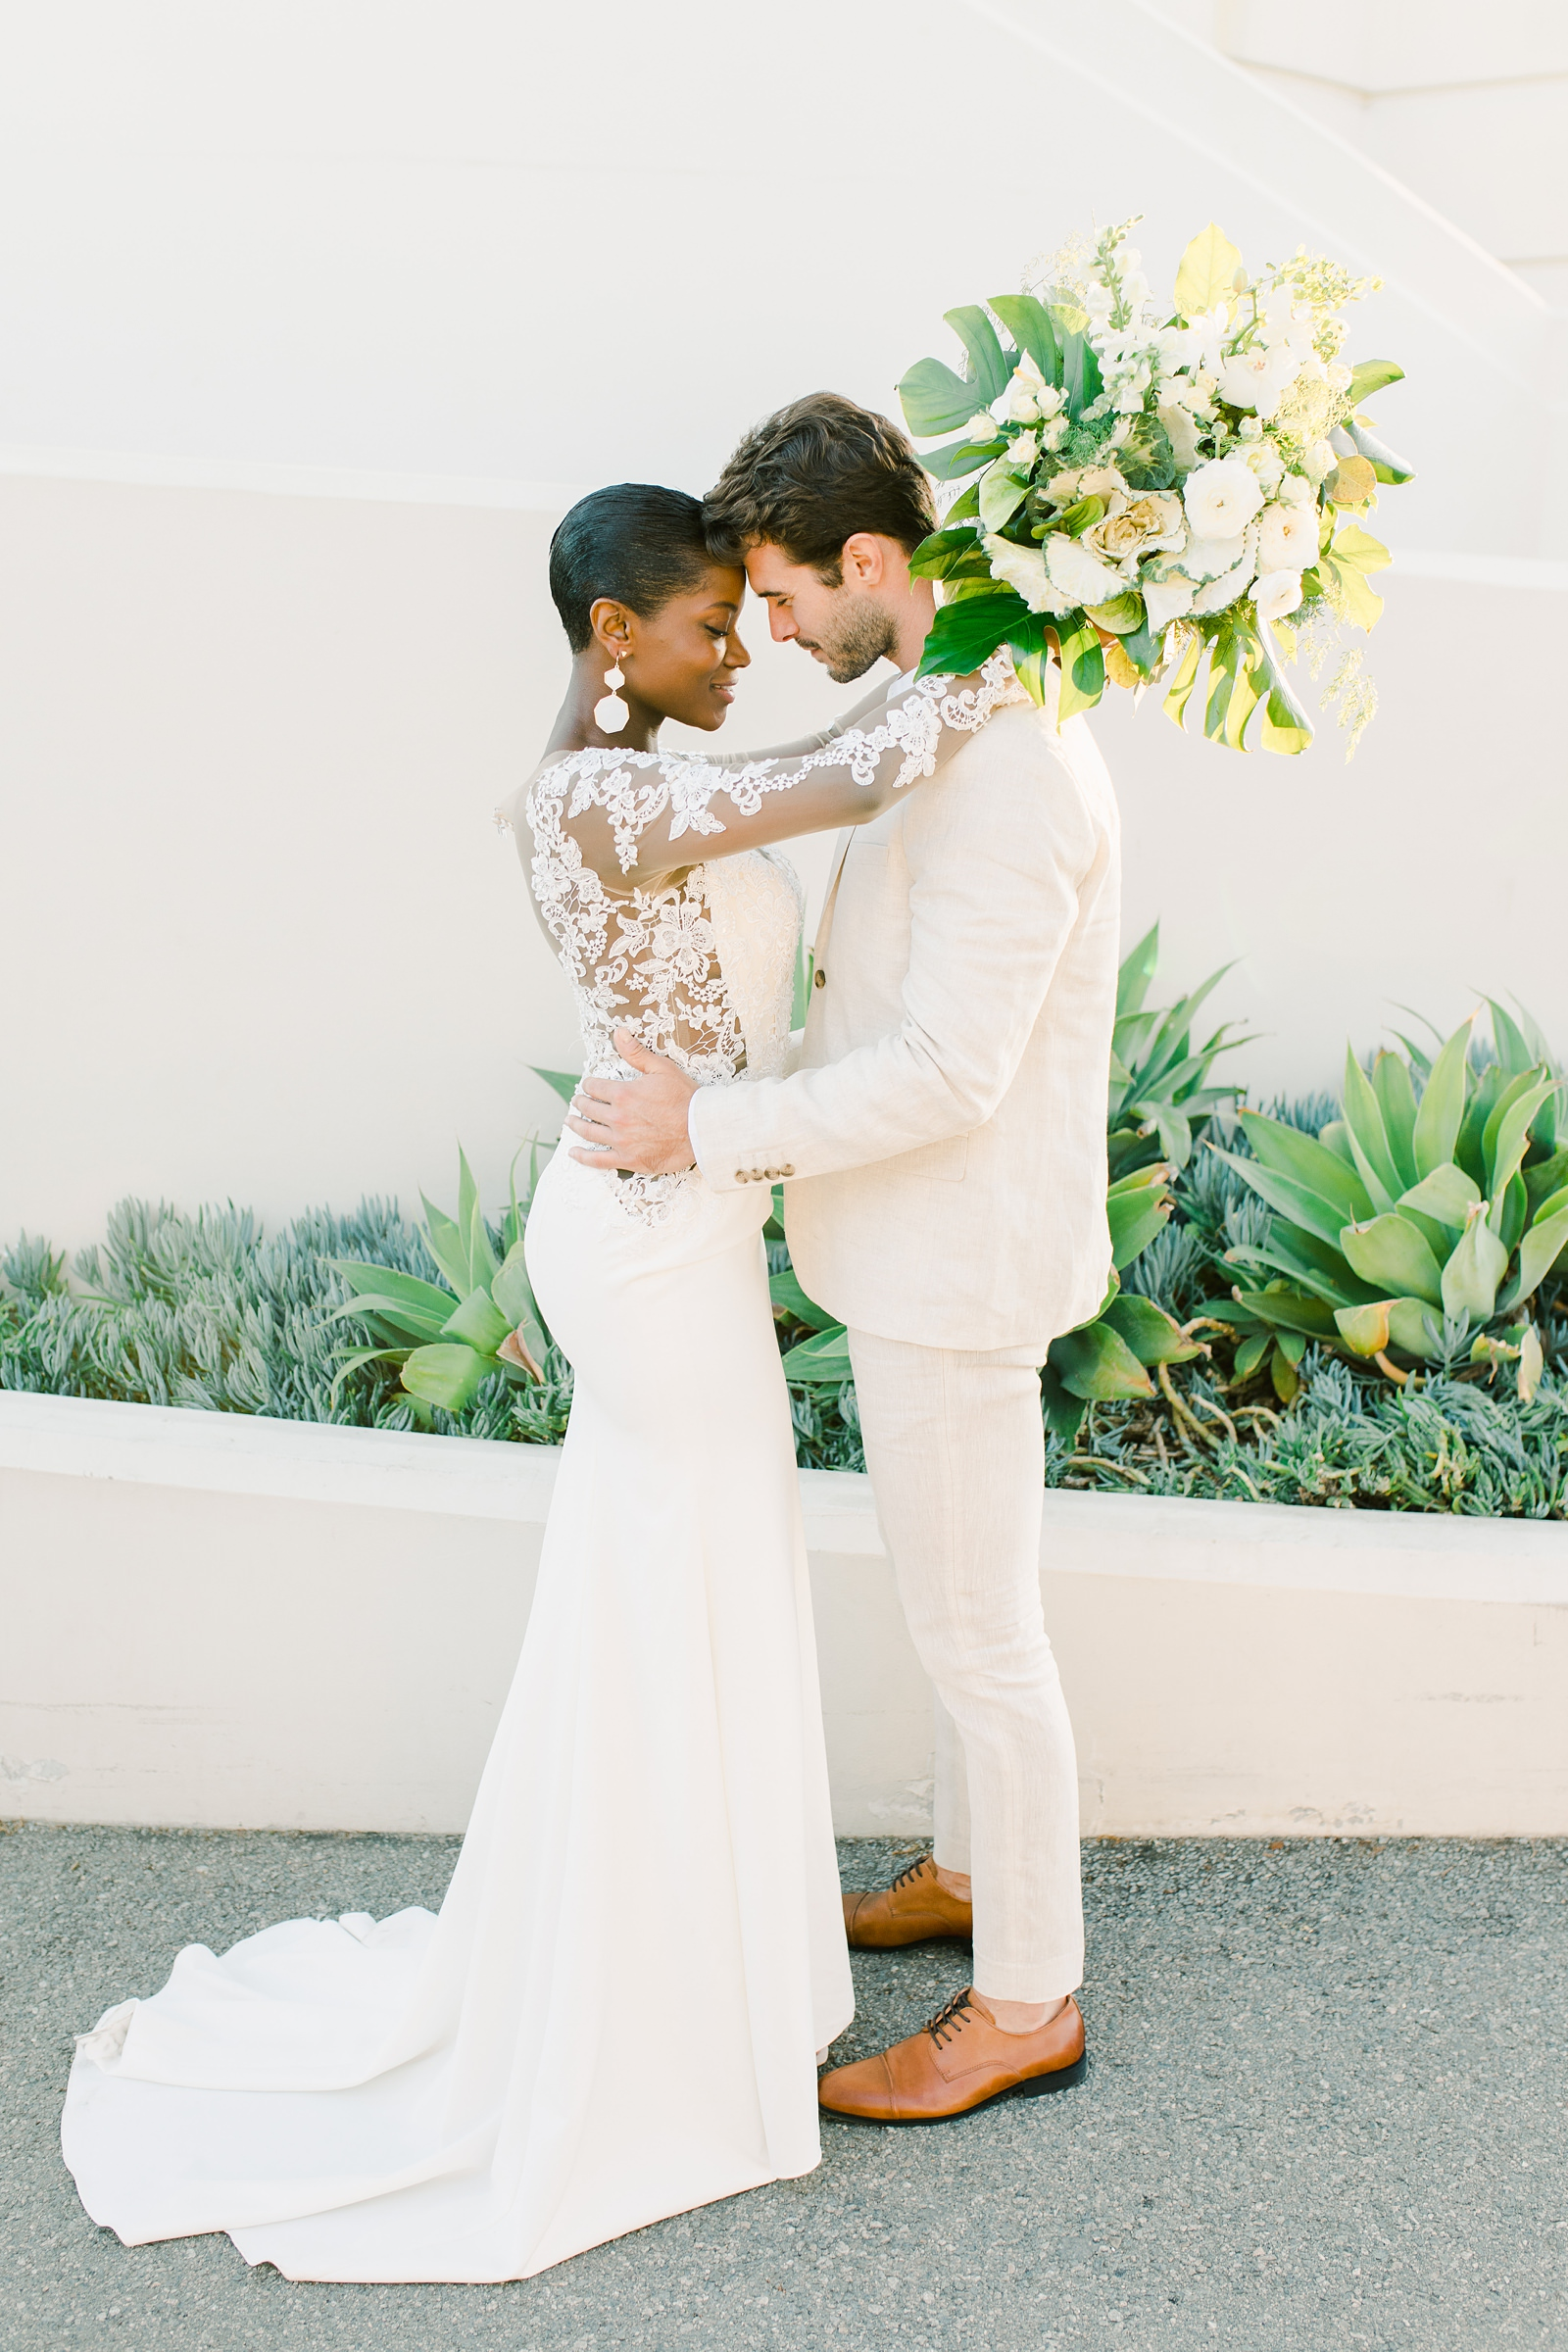 Modern timeless wedding photography at the Griffith Observatory in Los Angeles, California destination wedding photographer